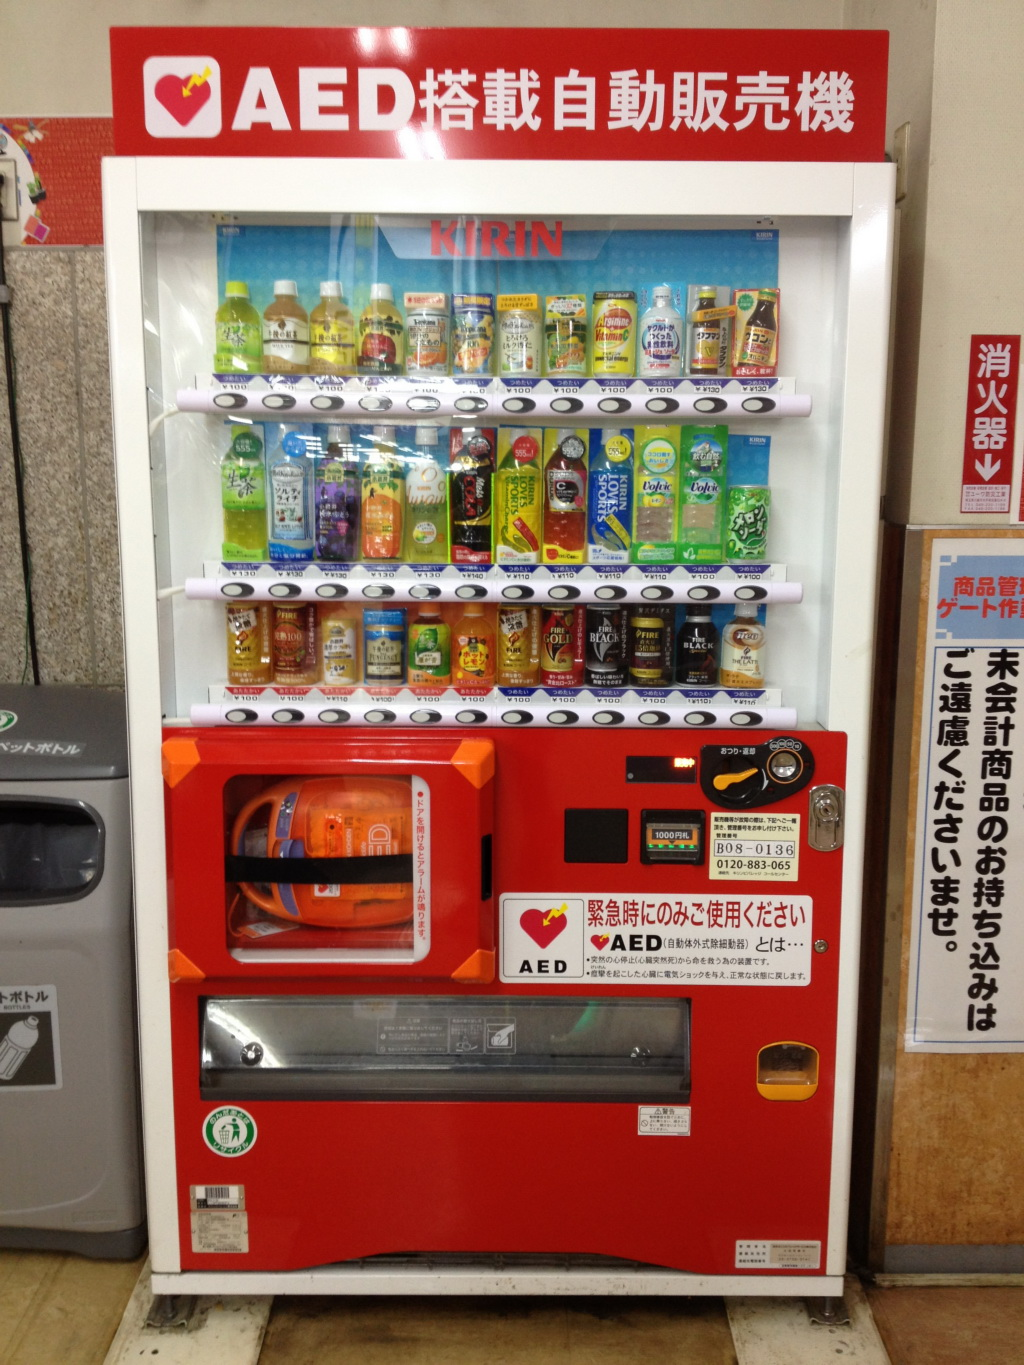 Vending-Machine-with-AED